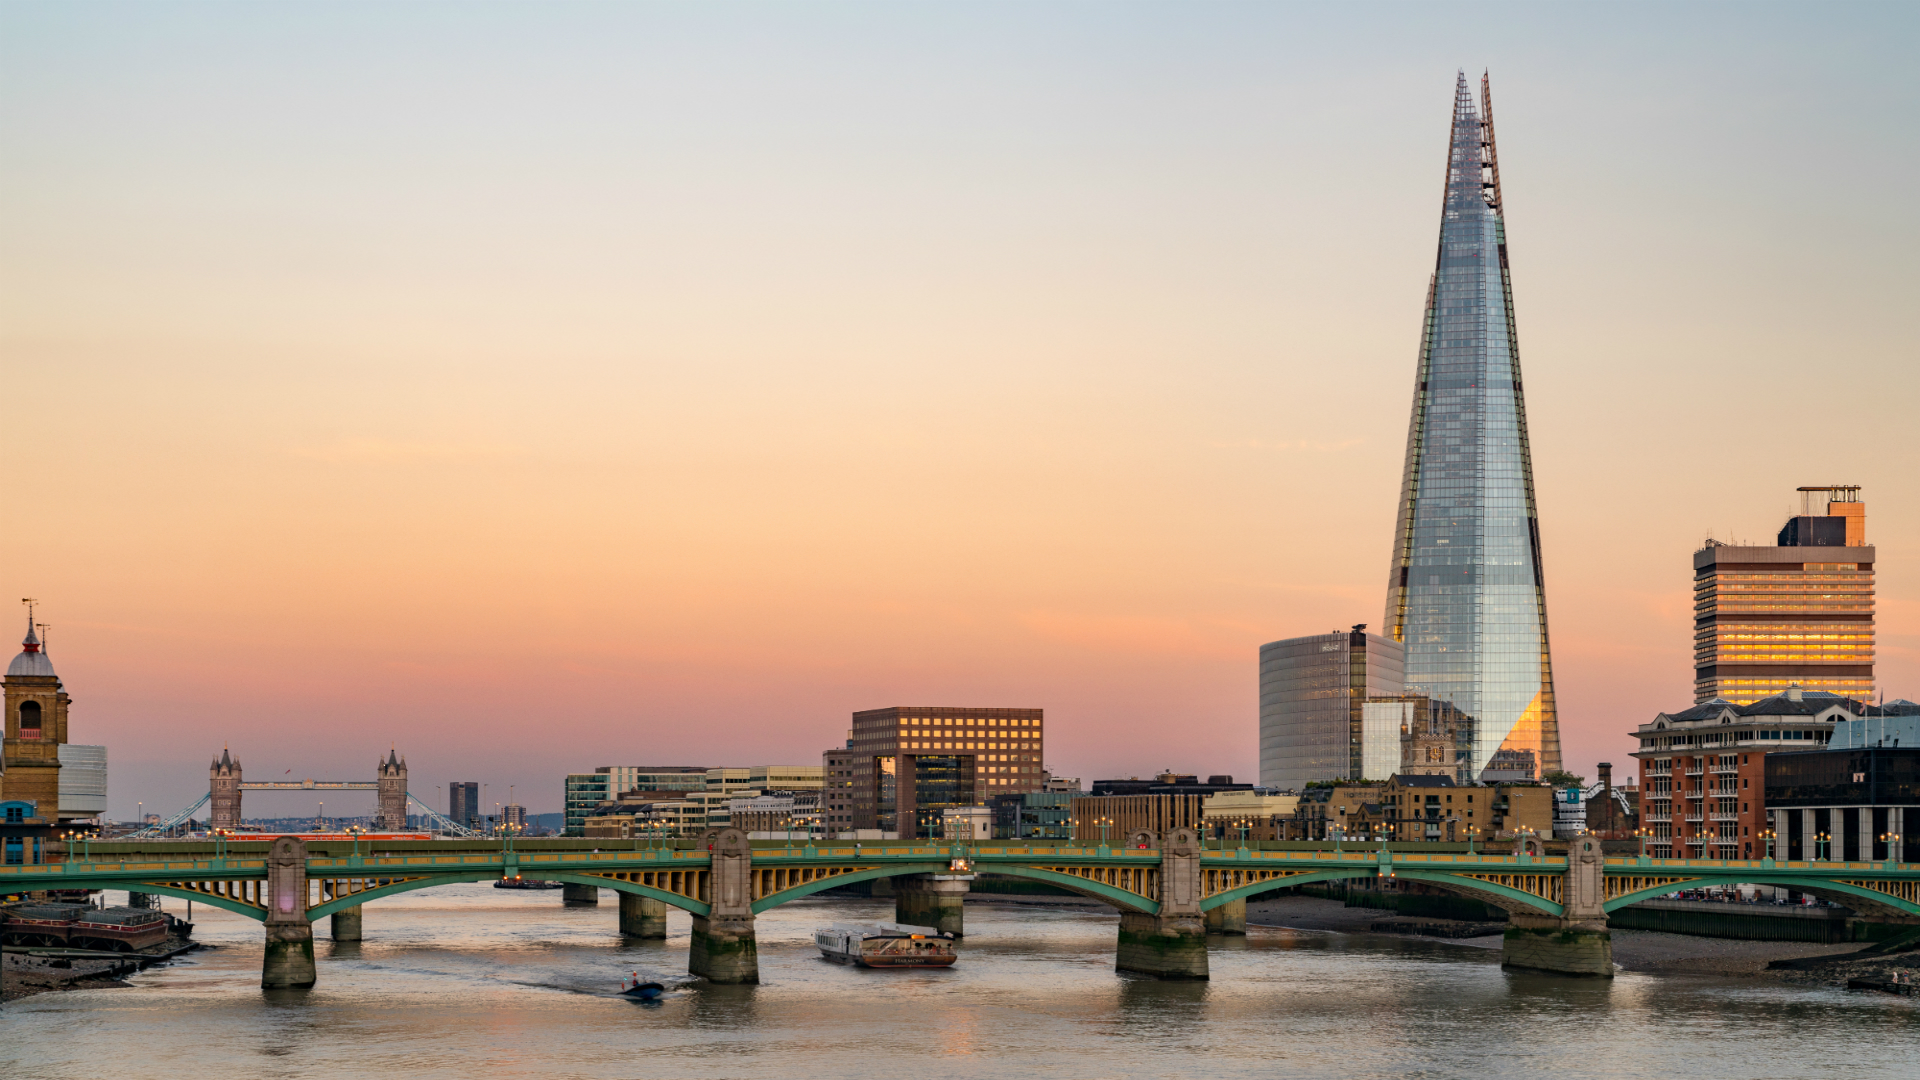 Sunset over the Thames with the Shard in the background.